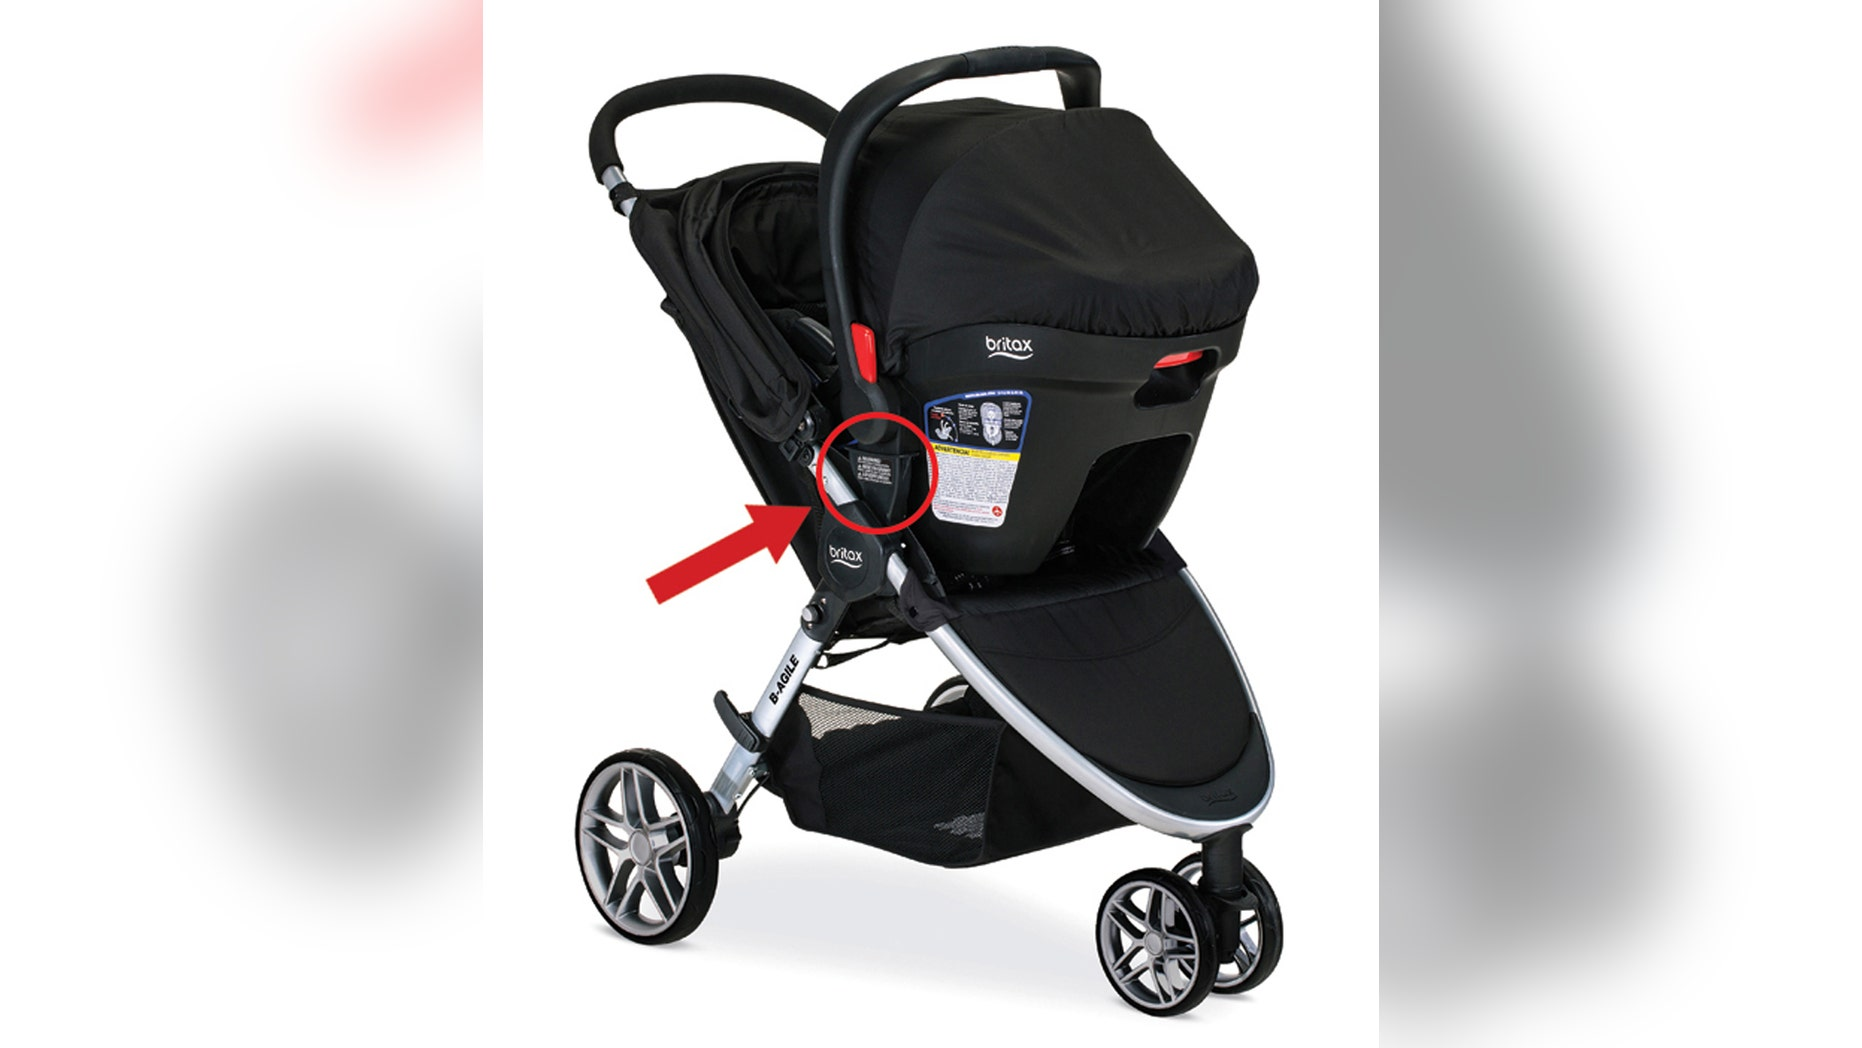 This image provided by the Consumer Product Safety Commission (CPSC) shows a Britax Stroller.